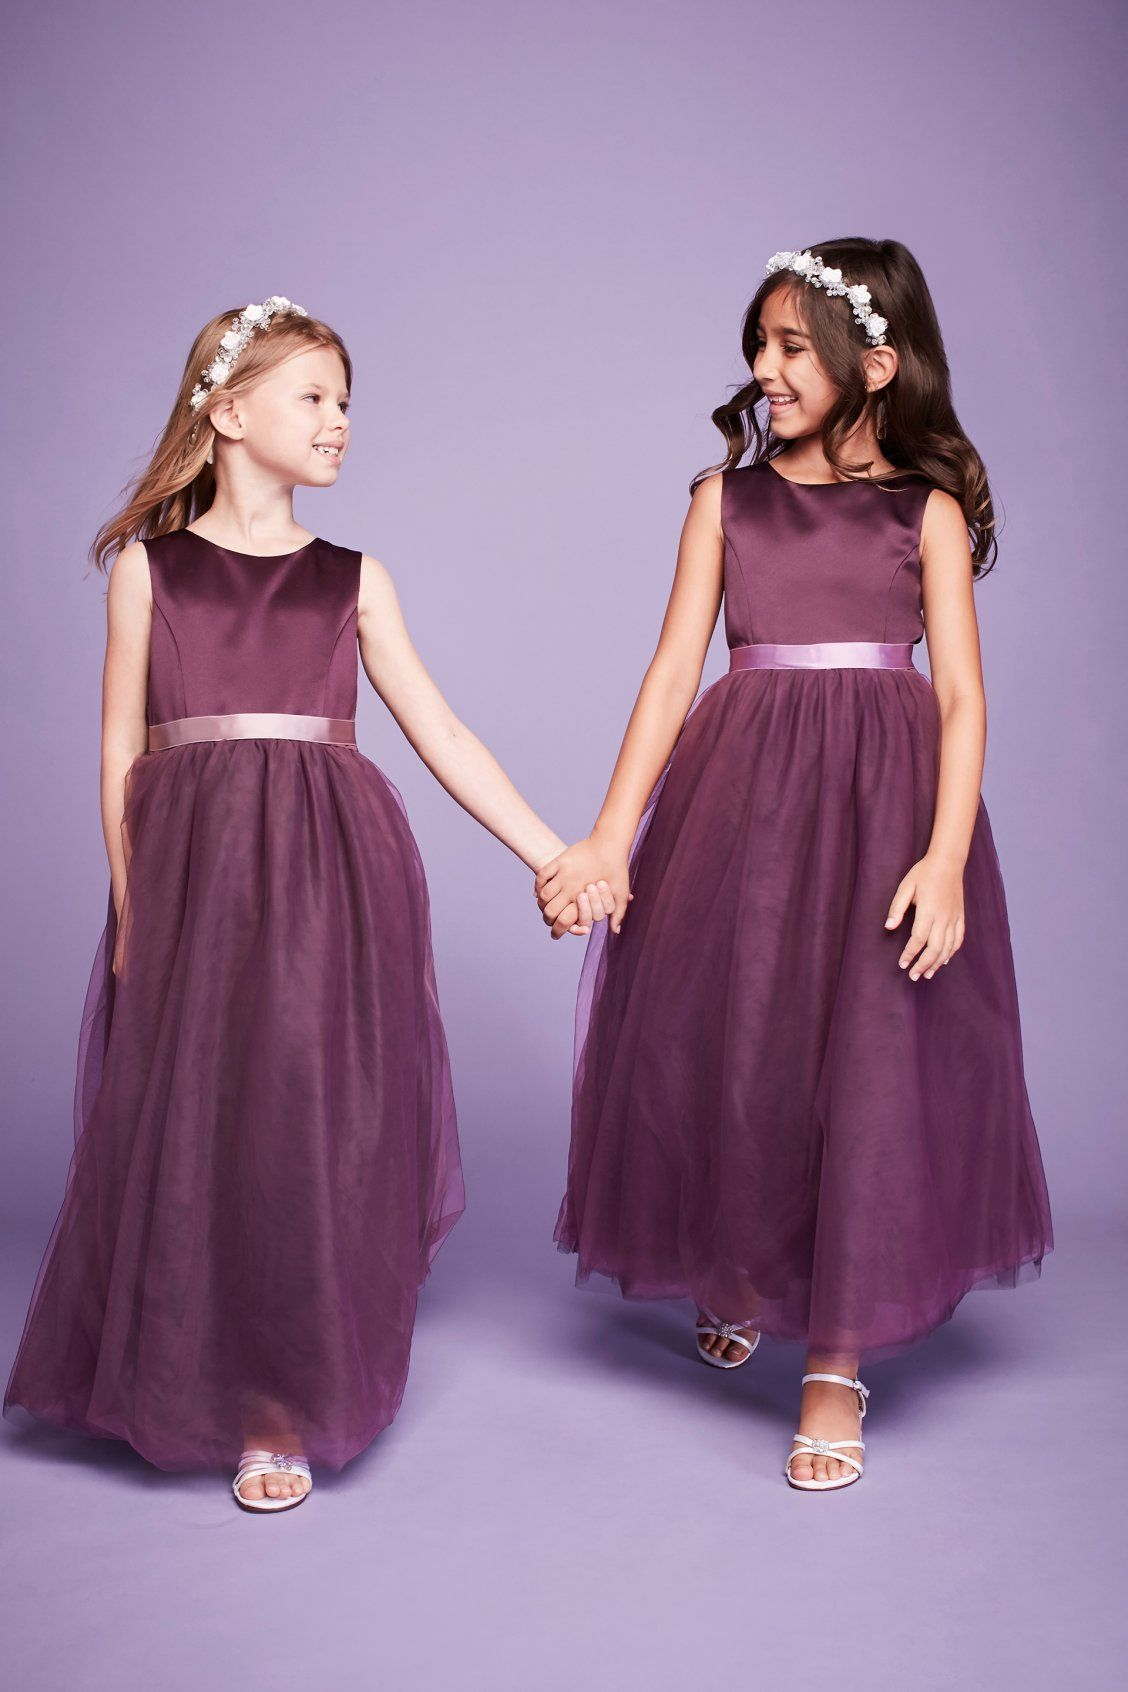 Flower Girl Dresses Weddings & Events Children Kids Flower Girls Dress Chiffon Sleeveless High-low Summer Casual Dress For Daily Holiday Party Beach Formal Dresses Fine Craftsmanship